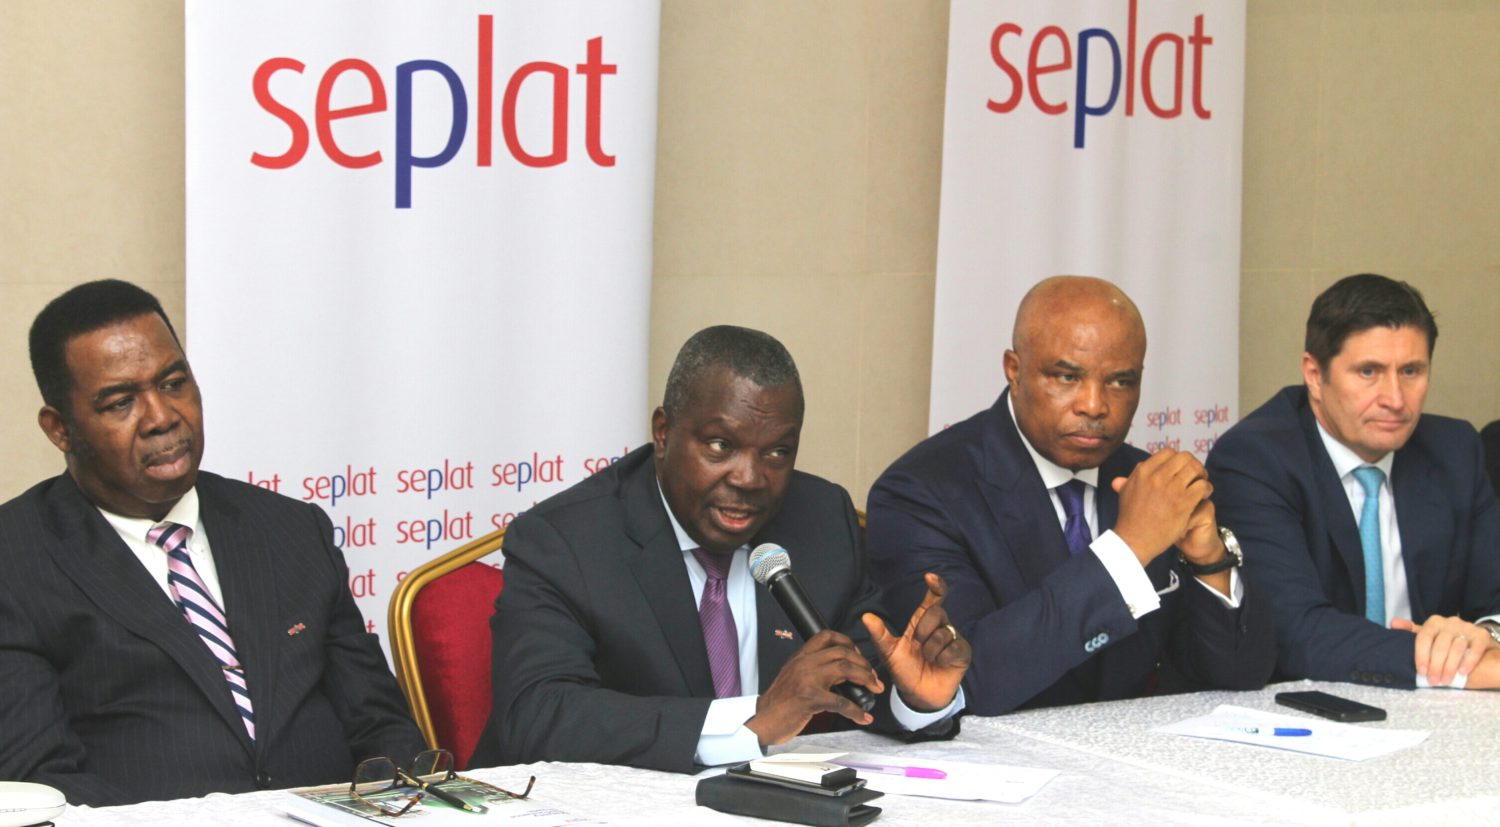 L-R: Mr. Basil Omiyi, Director, Seplat Petroleum Development Company Plc; Mr. Austin Avuru, Chief Executive Officer; Dr. A.B.C. Orjiako, Chairman; and Roger Brown, Chief Financial Officer, during the company's 6th Annual General Meeting held in Lagos, yesterday.